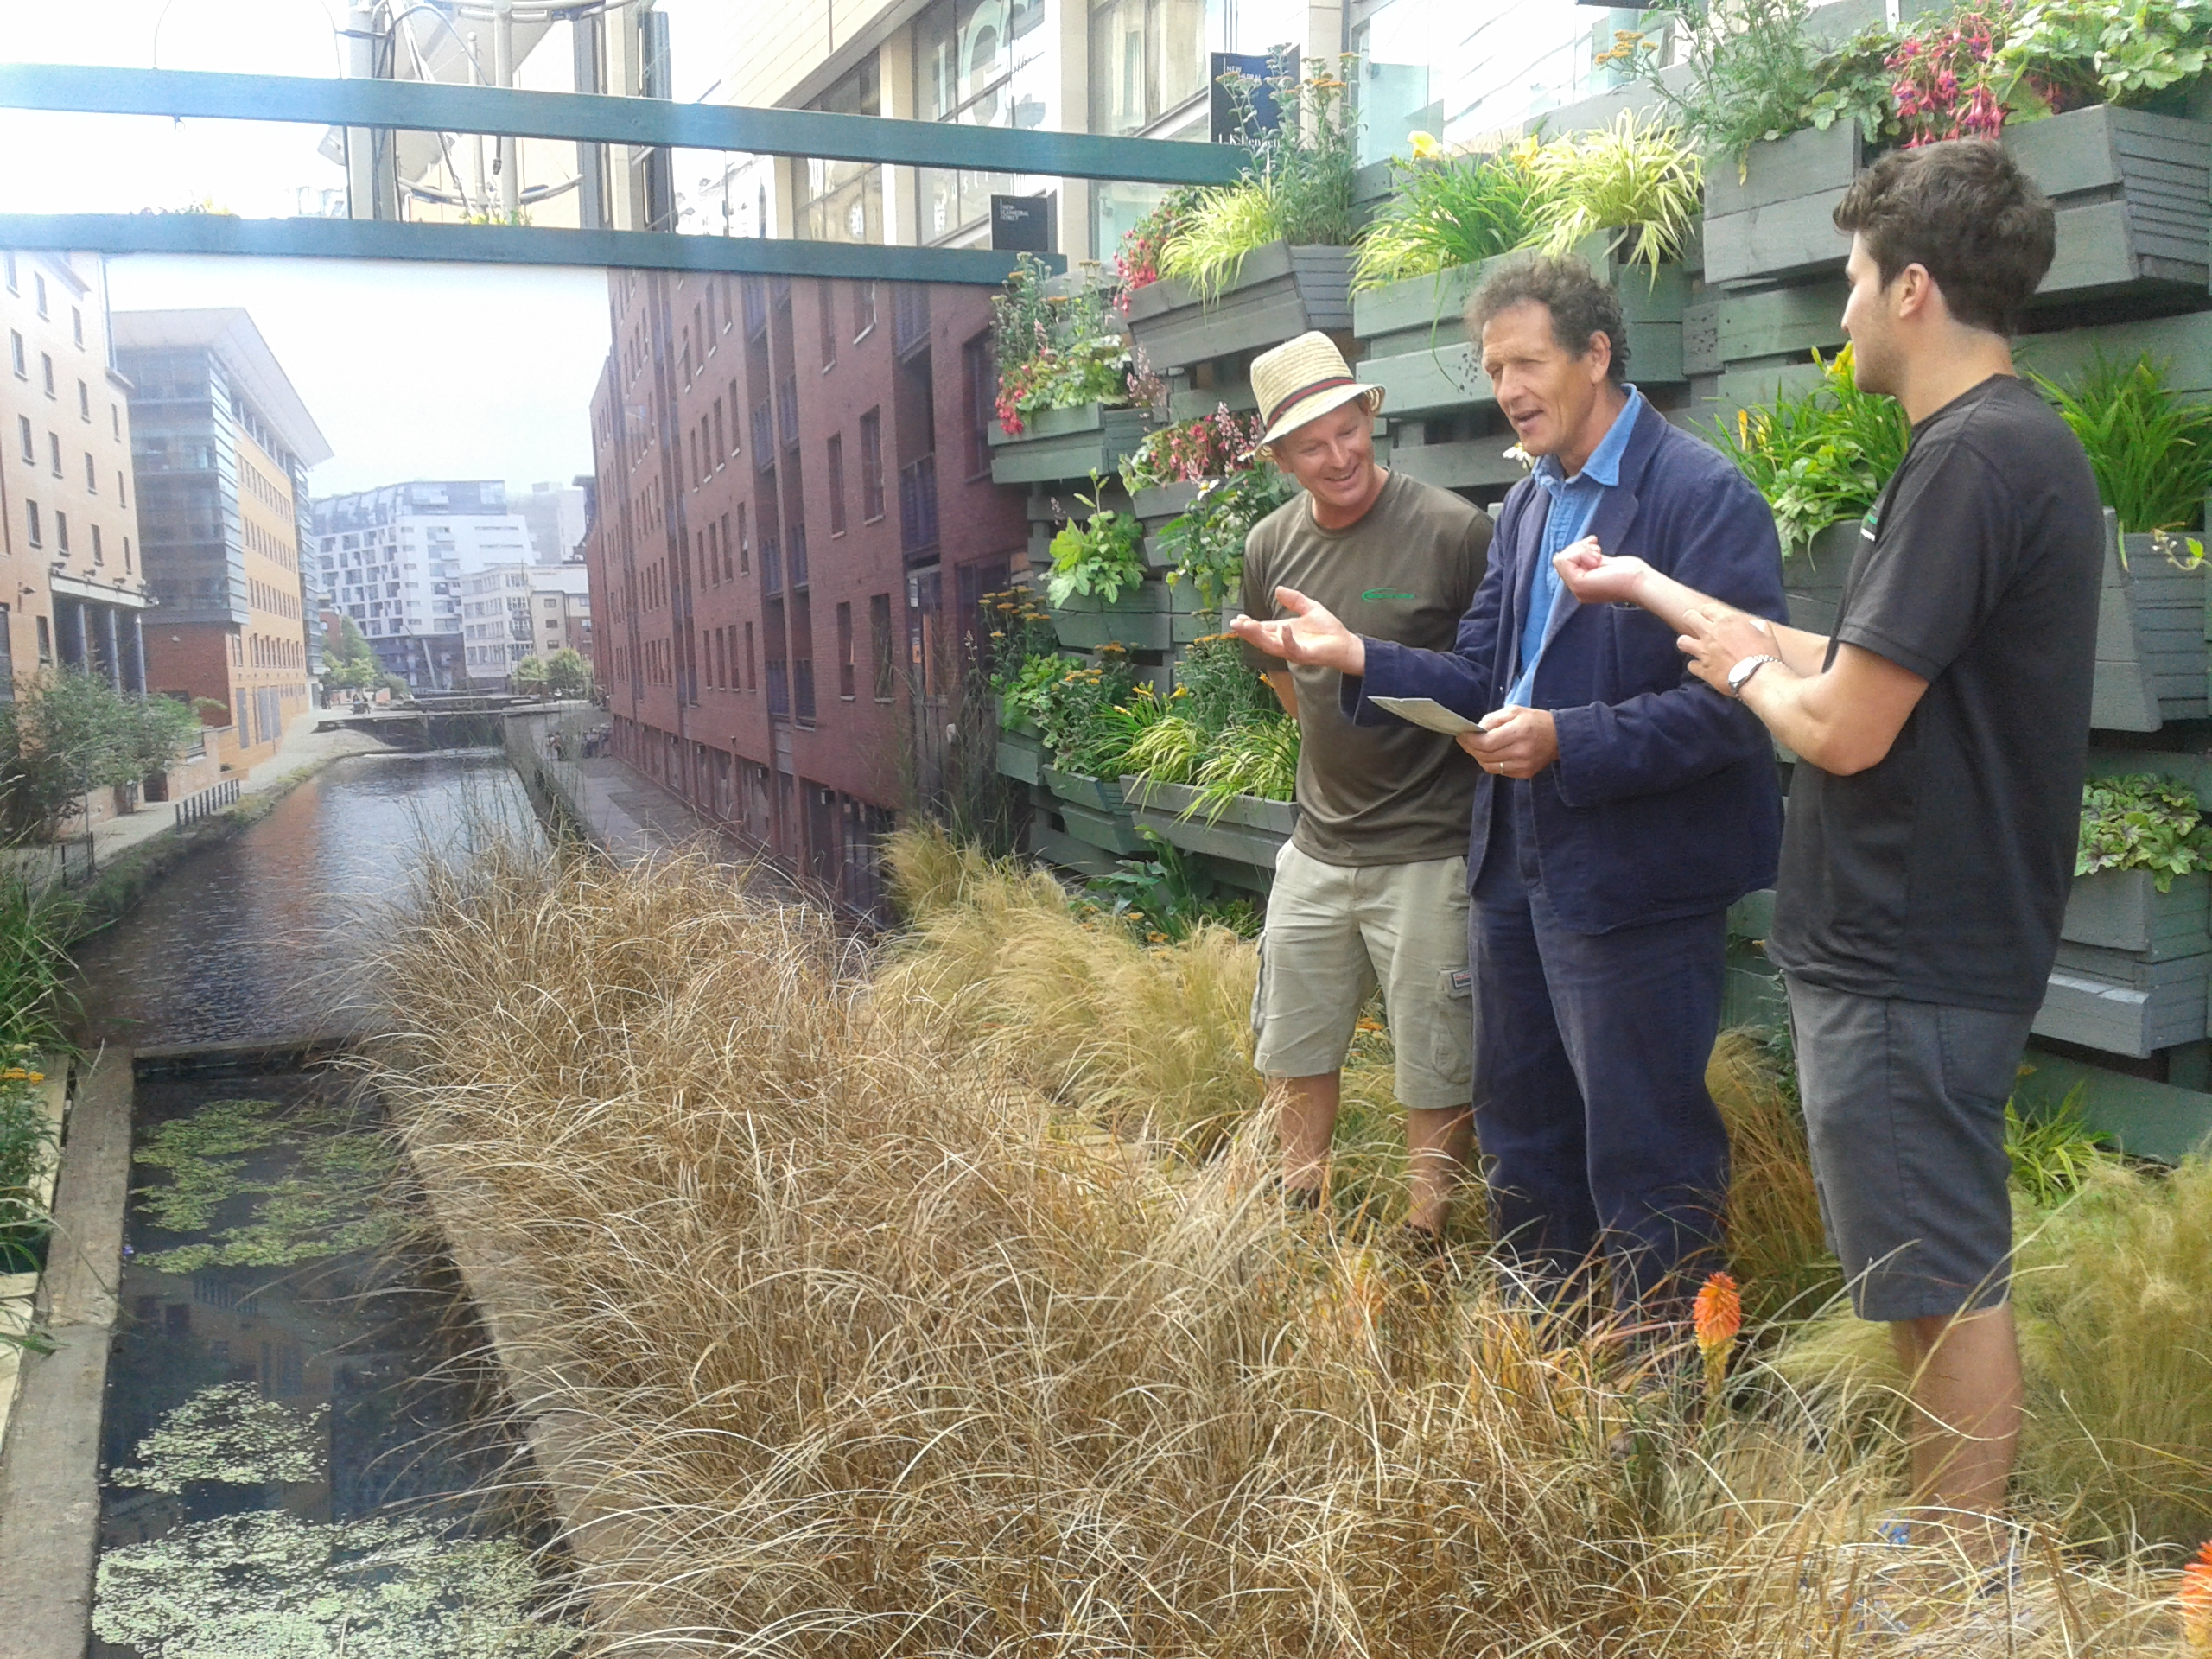 Dan & Monty Don at Dig the City 2015